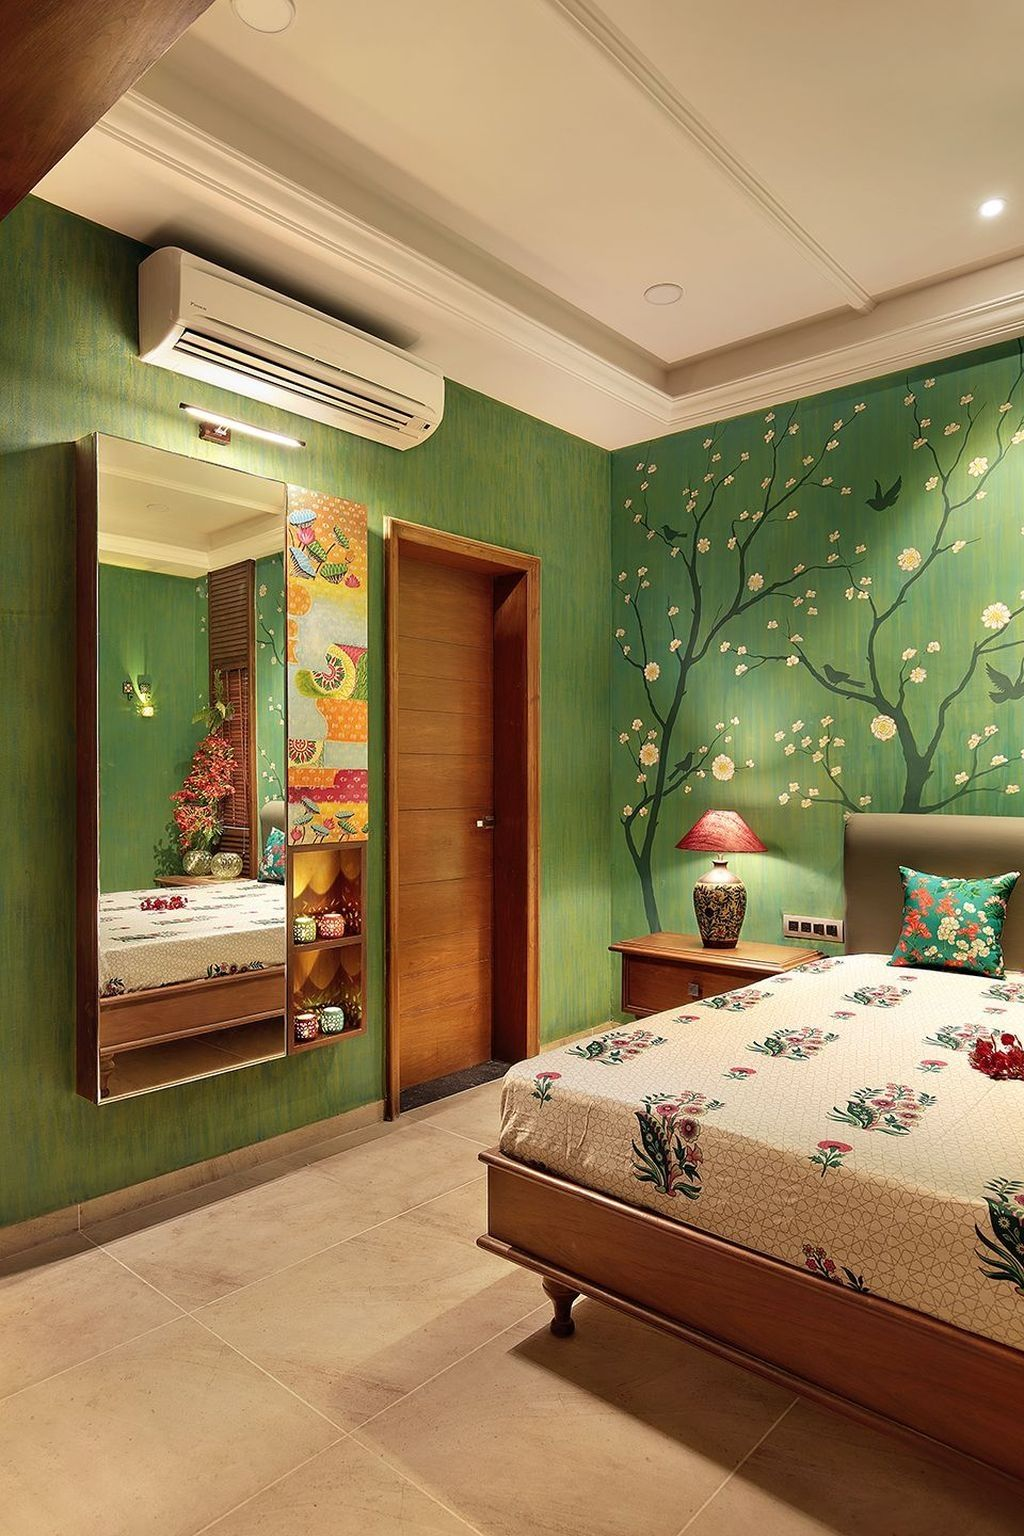 40 Creative Things Design Ideas To Be Prepared For Your New Home Luxury Room Design Traditional Bedroom Decor Indian Bedroom Decor